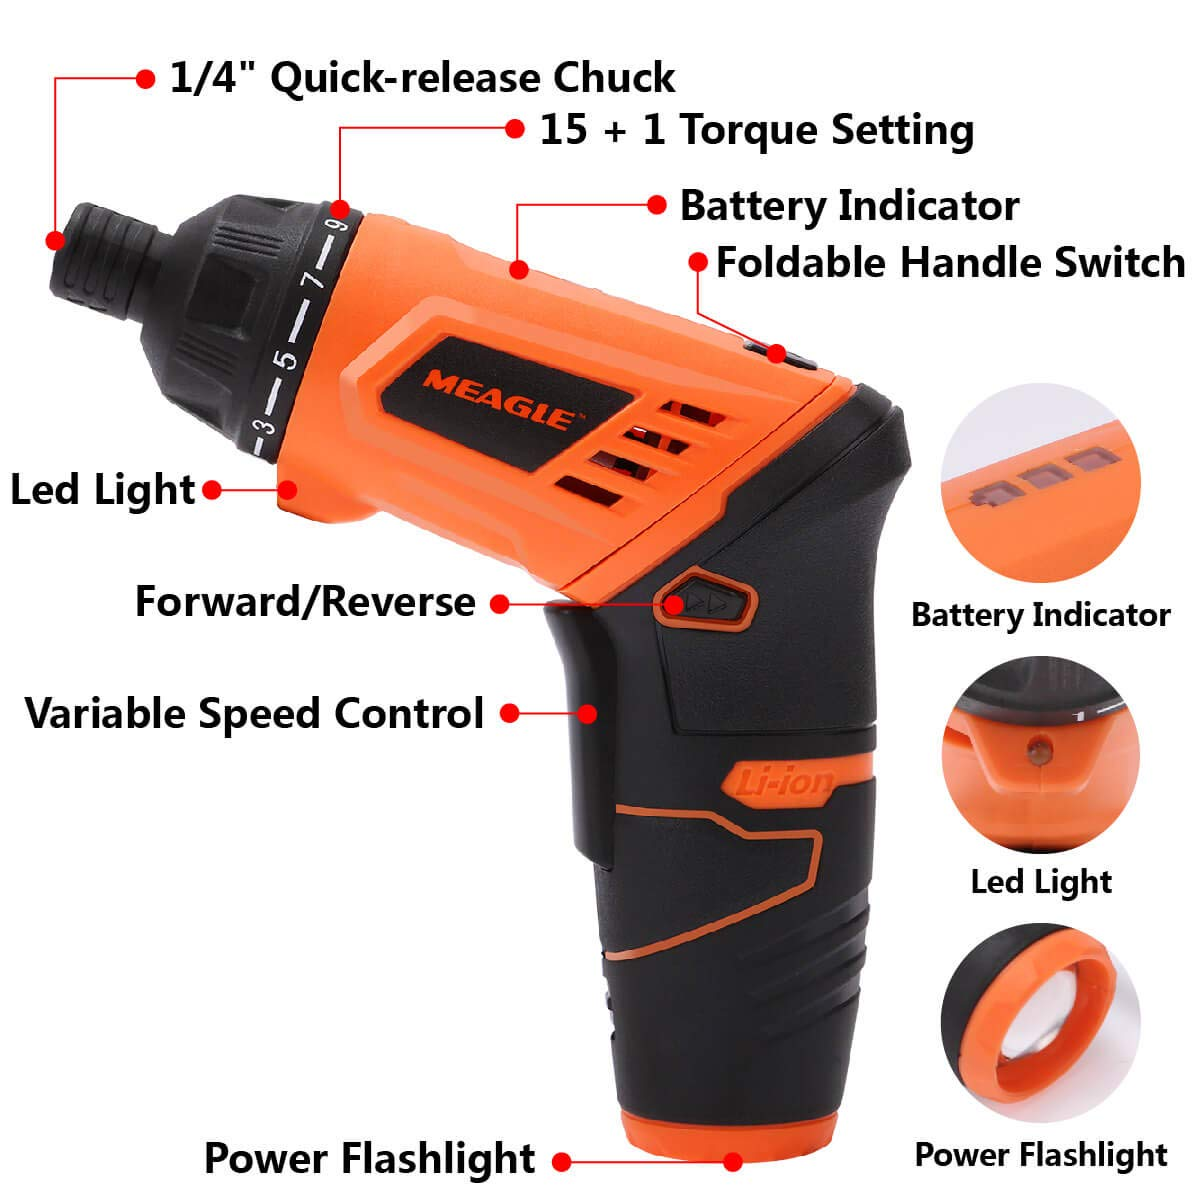 """1//4/"""" Chuck Meagle Rechargeable Electric Screwdriver Cordless 1 Torque Setting,SD03-1036 Adjustable Handle 3.6V 1.3 Ah Lithium-Ion Battery Power 15 40 in-lb//4.5 N.m Max Torque"""